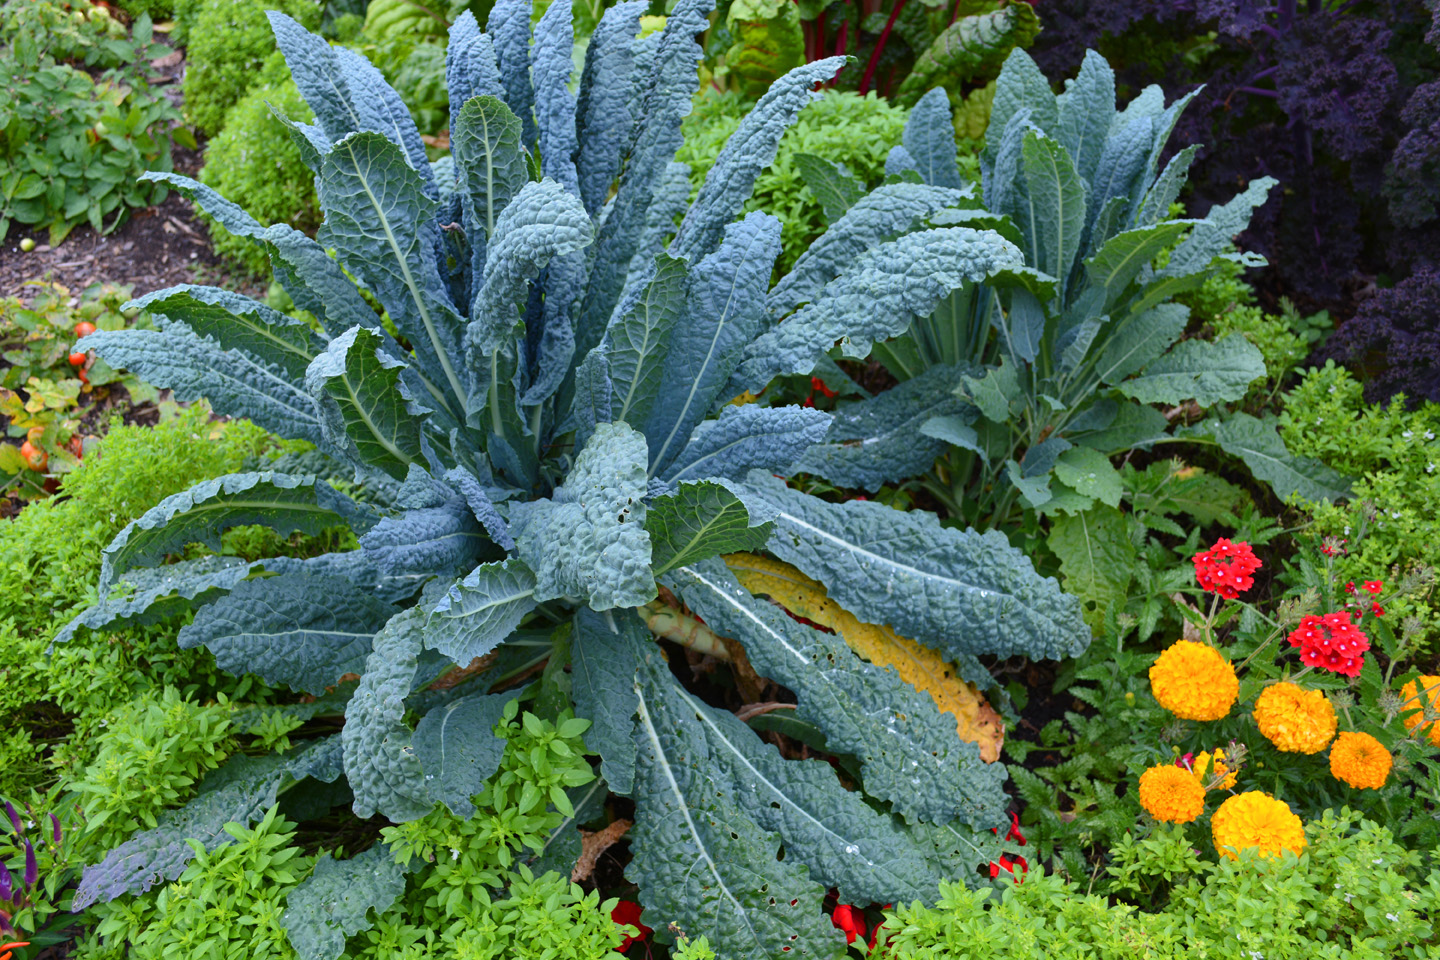 Ornamentals and Vegetables Living Together In Perfect Harmony